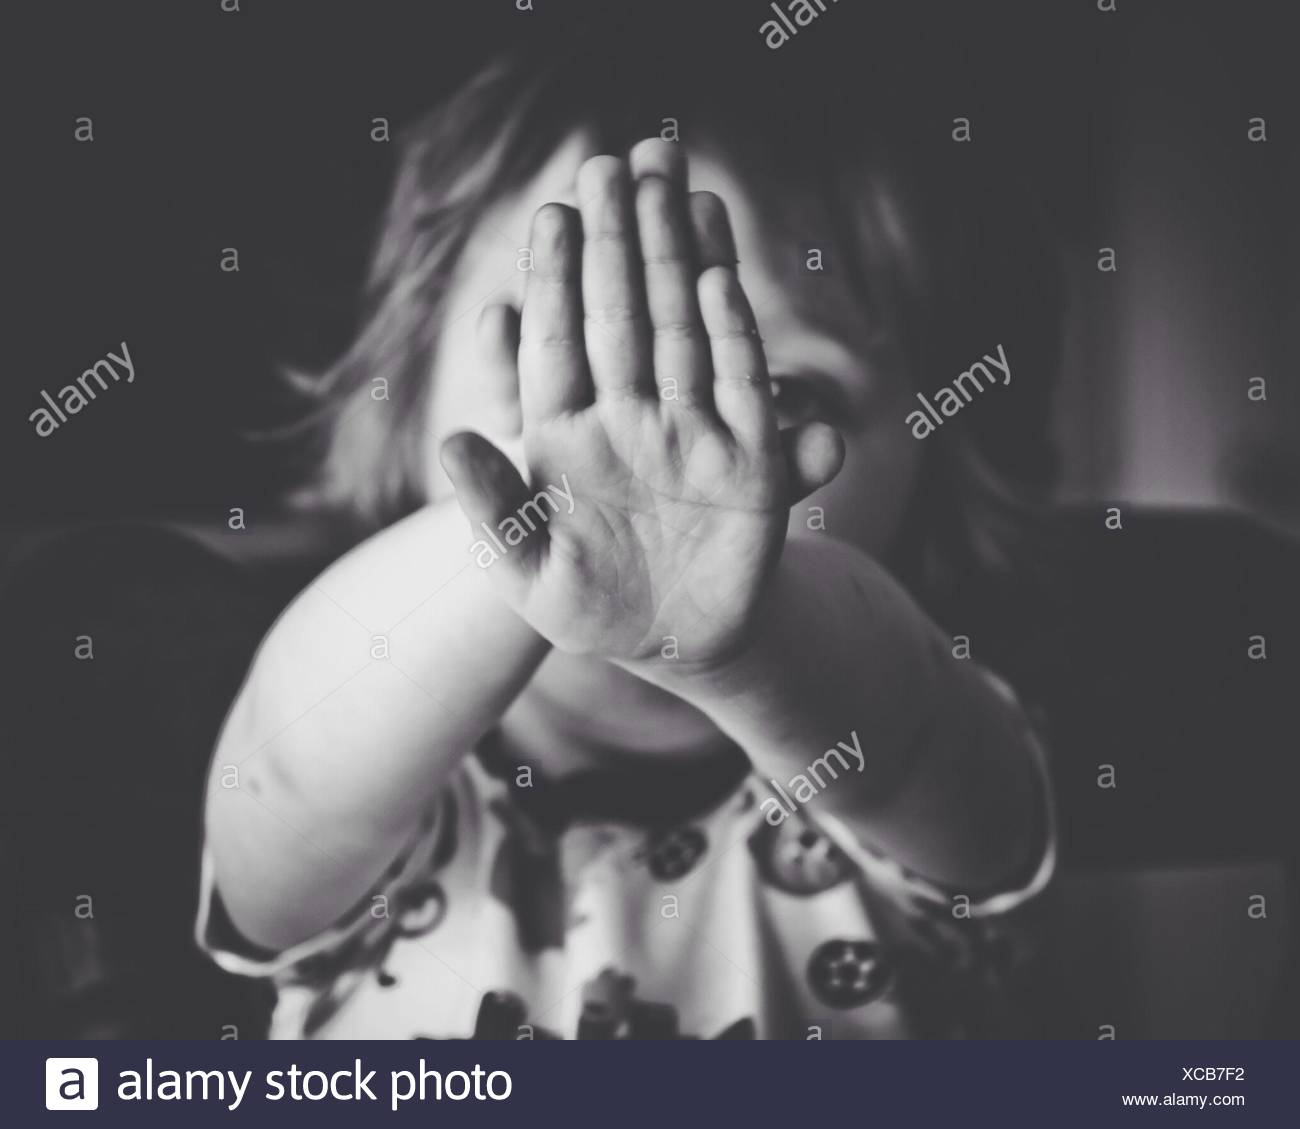 Close-Up Portrait of Girl Hiding Face Photo Stock